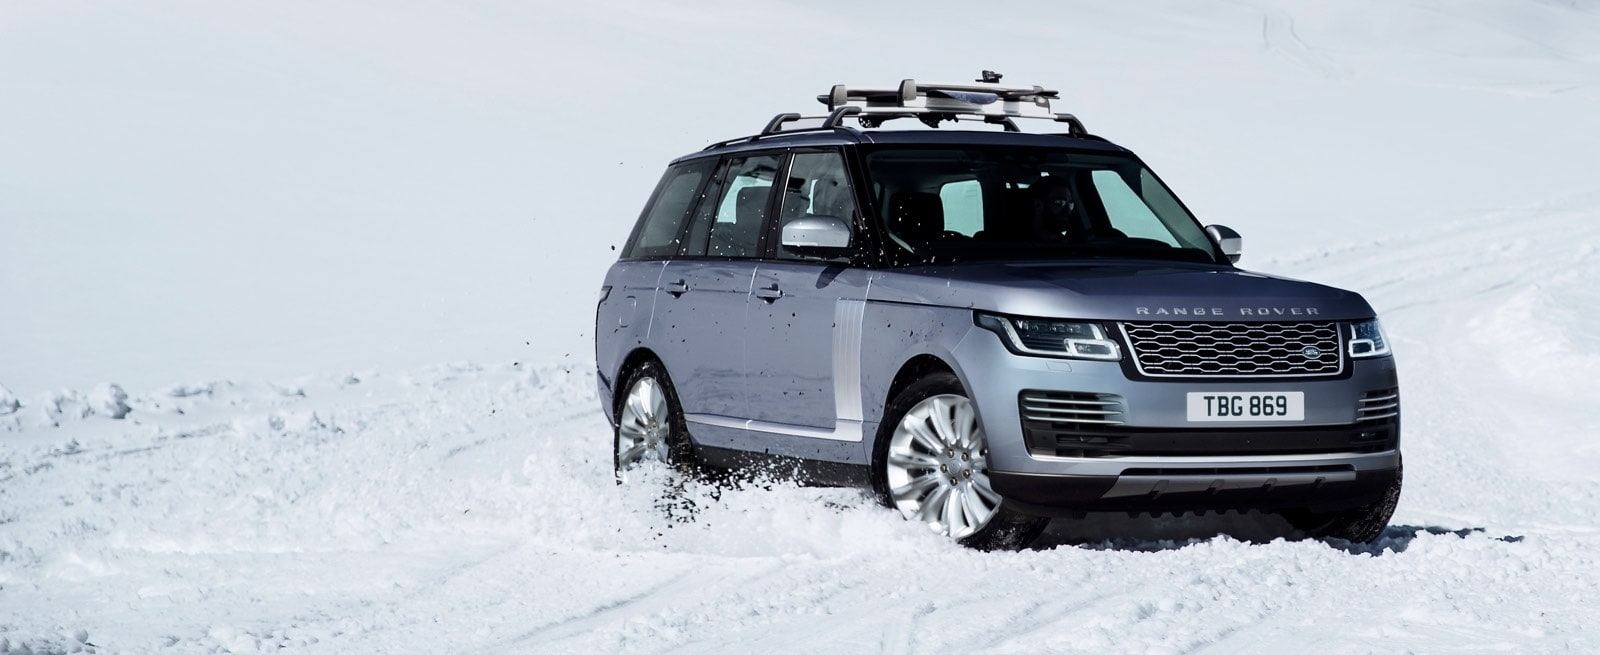 Blue Range Rover with Roof Rack Driving Through Snowy Terrain